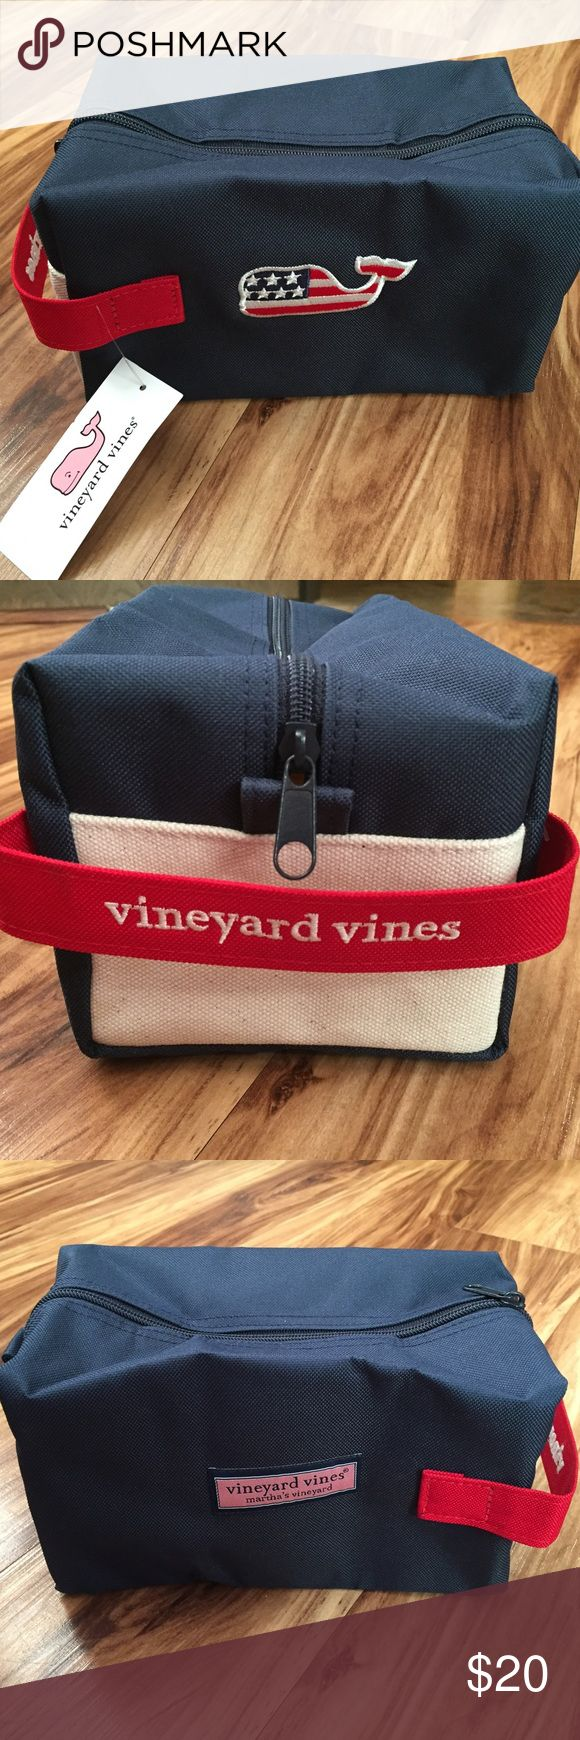 """Vineyard Vines NWT Whale Flag Travel Dopp Kit Bag Vineyard Vines Dopp Kit Bag Red, White & Blue A great bag for travel essentials, makeup, and toiletries.  Features: Signature Vineyard Vines Logo 100% Polyester  Top Zip  Exterior American Whale 8.5""""W x 4.75""""D x 5""""H +/- Side Carry Strap  Imported🐳 🇺🇸keywords: preppy, fraternity, sorority, prep, classic, vv, Fourth of July, America, patriotic Vineyard Vines Bags Cosmetic Bags & Cases"""